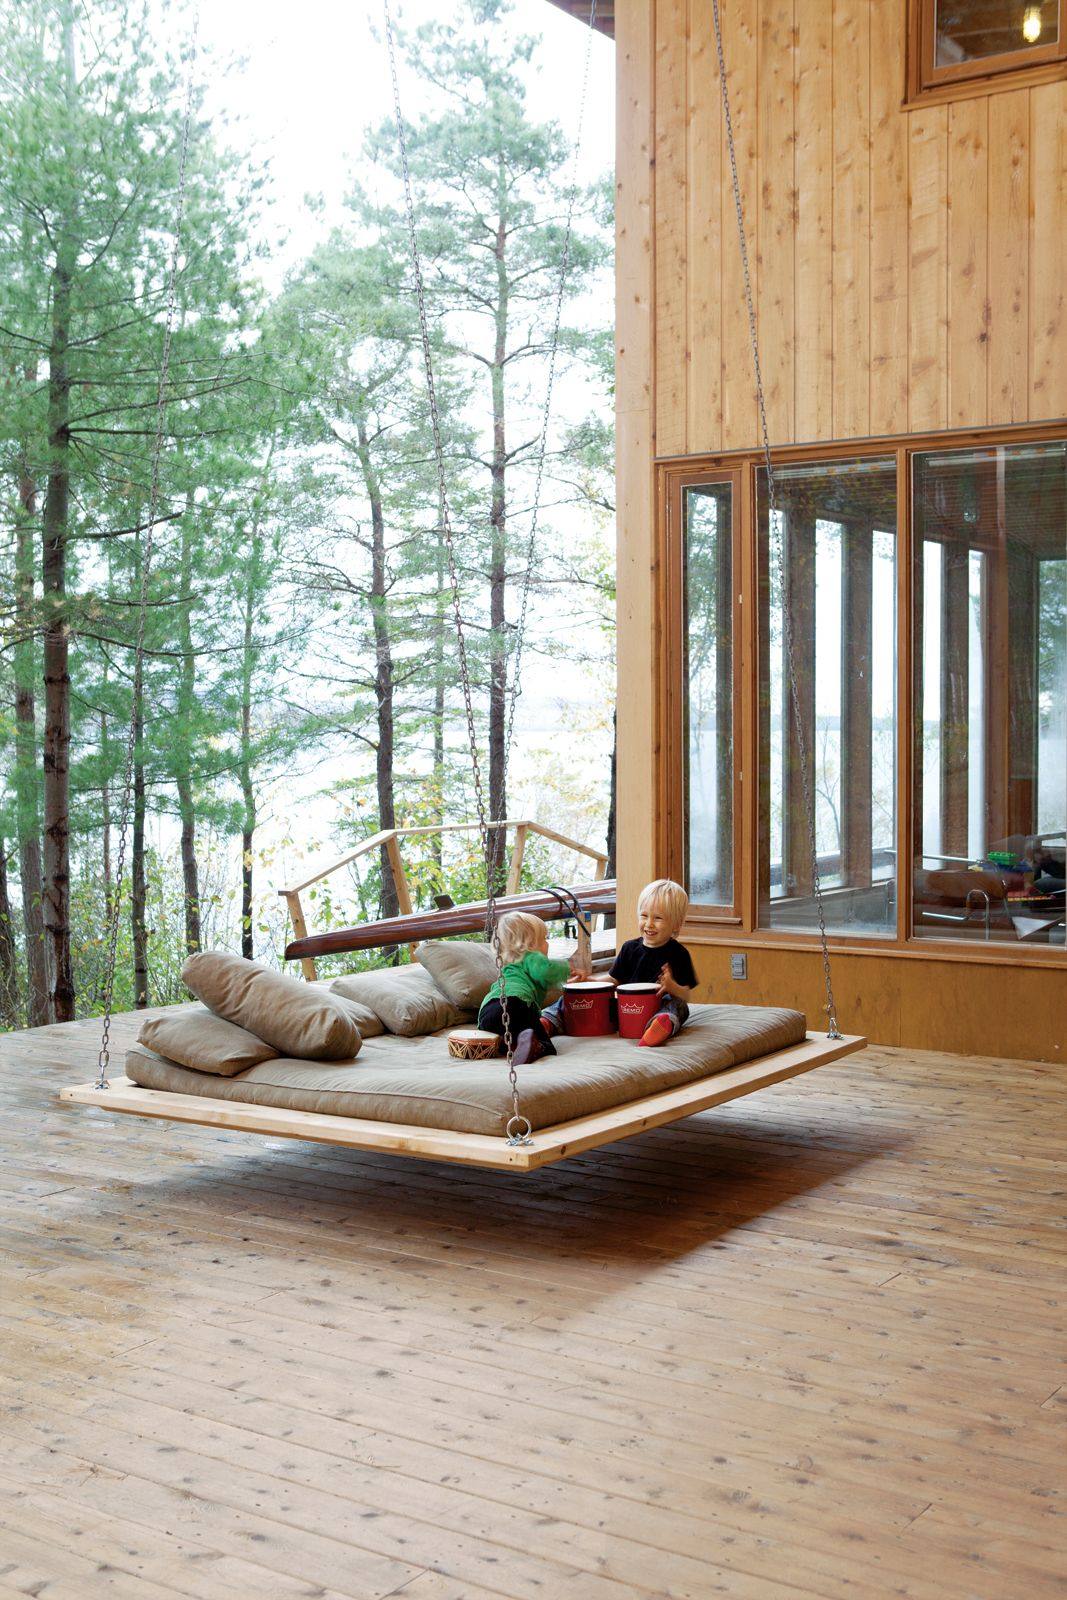 Creative modern porches and decks by jaime gillin from four friends